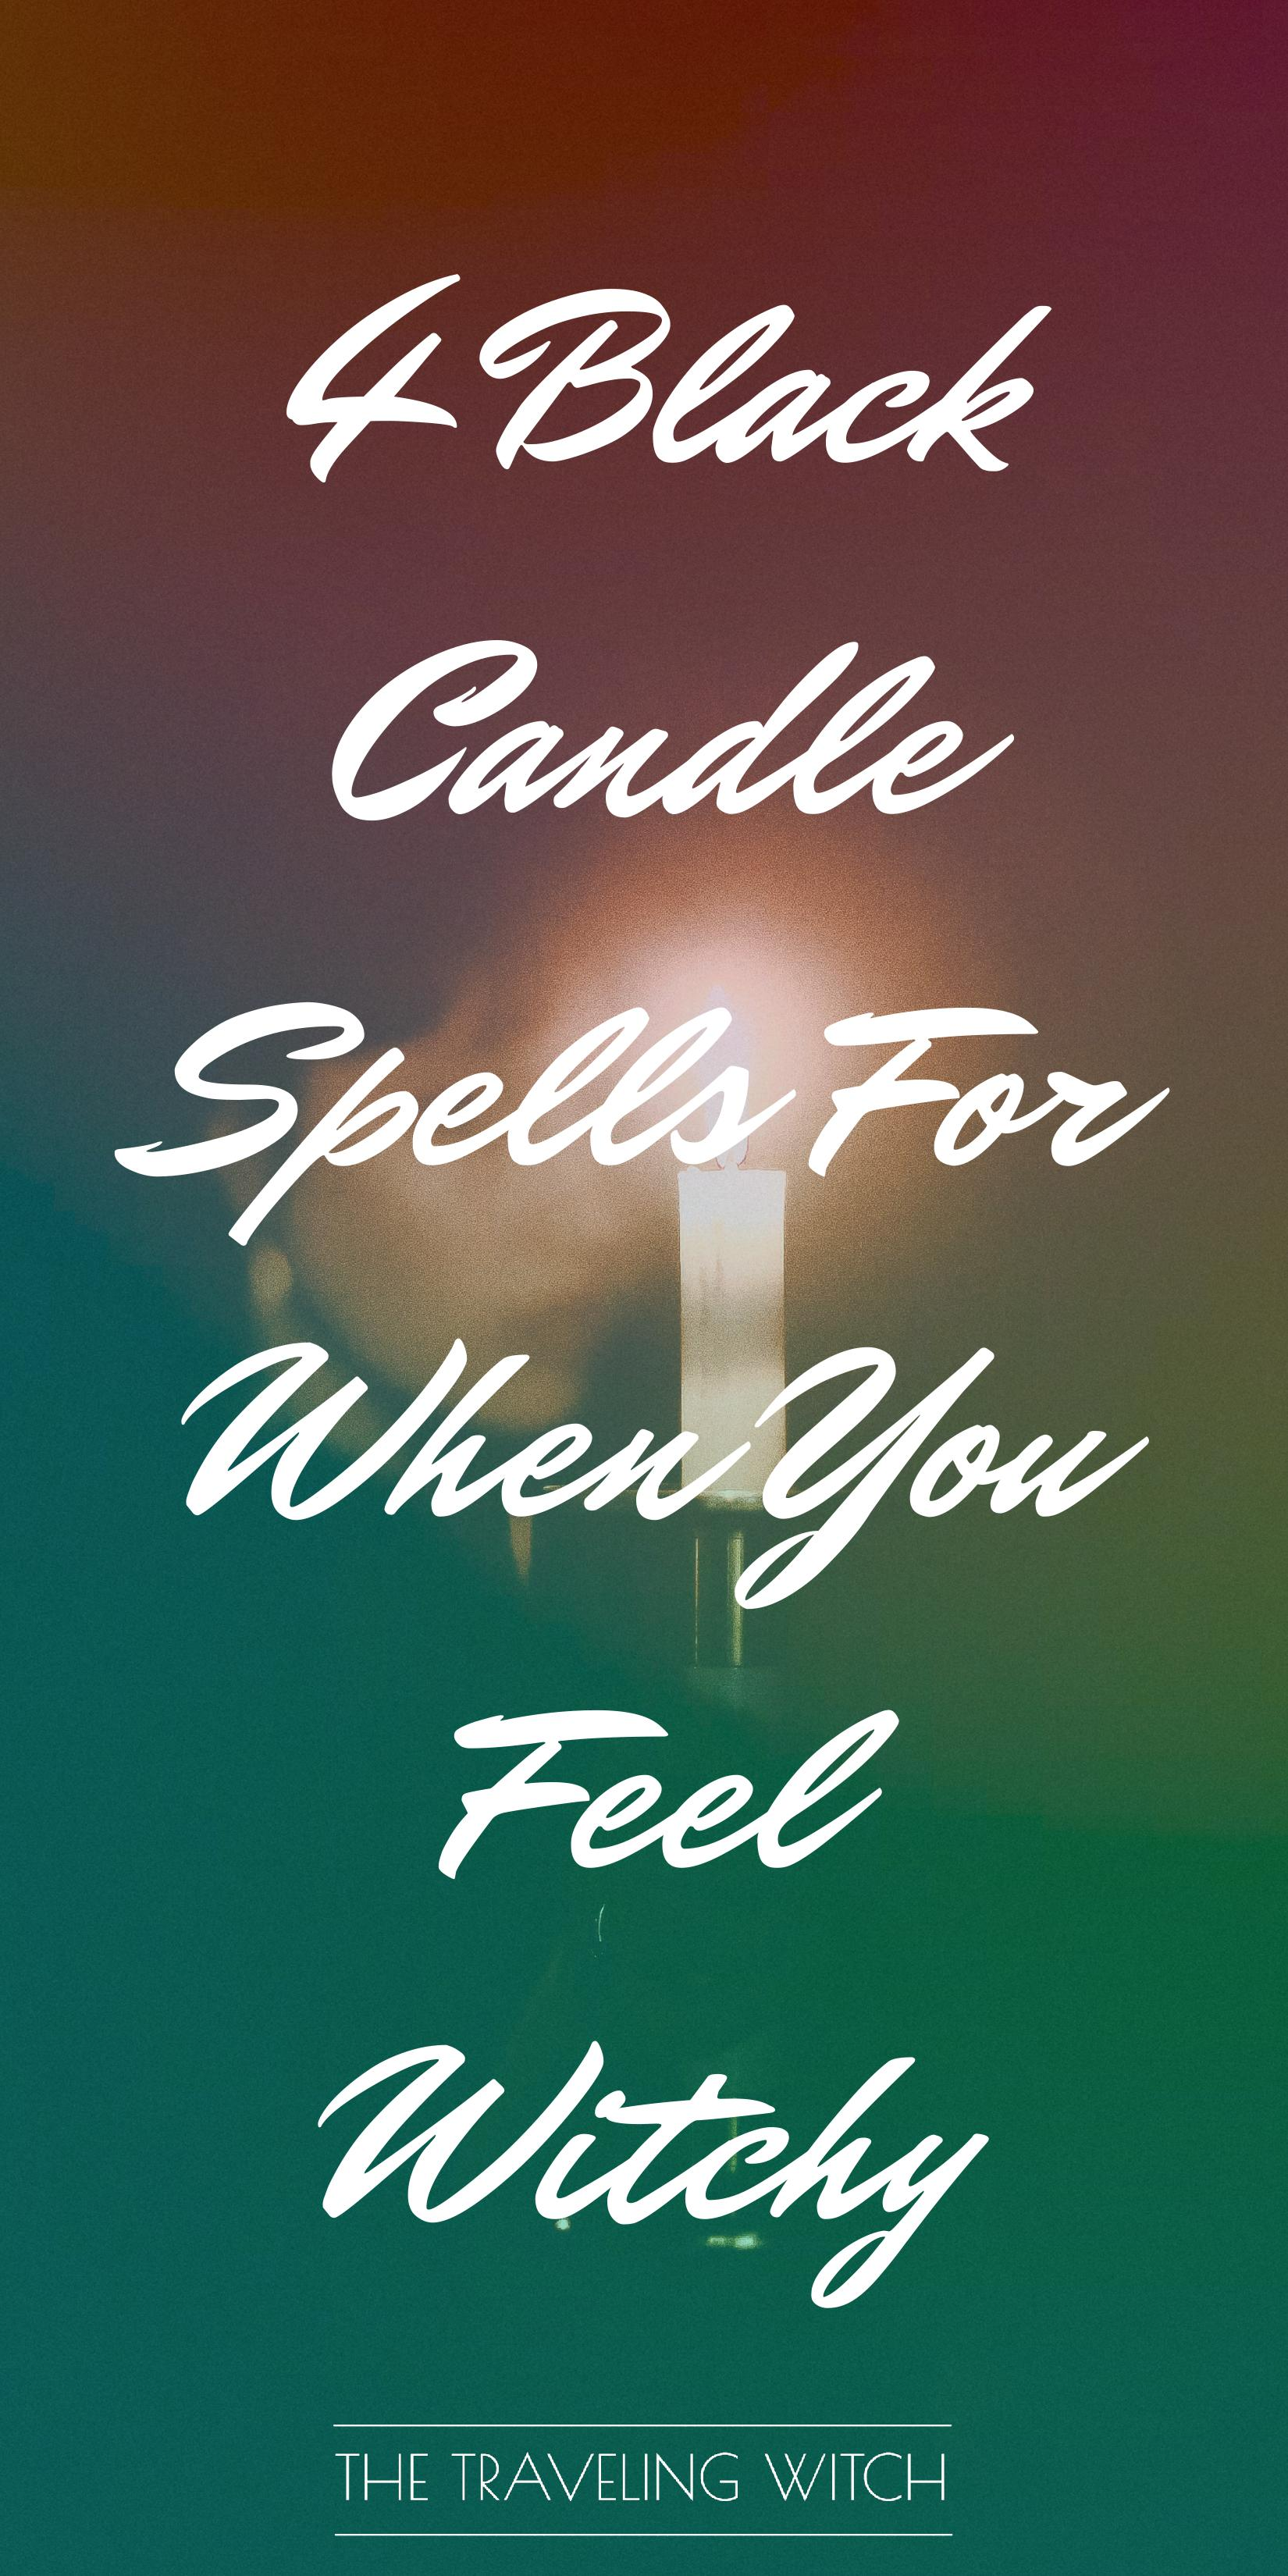 4 Black Candle Spells For When You Feel Witchy by The Traveling Witch